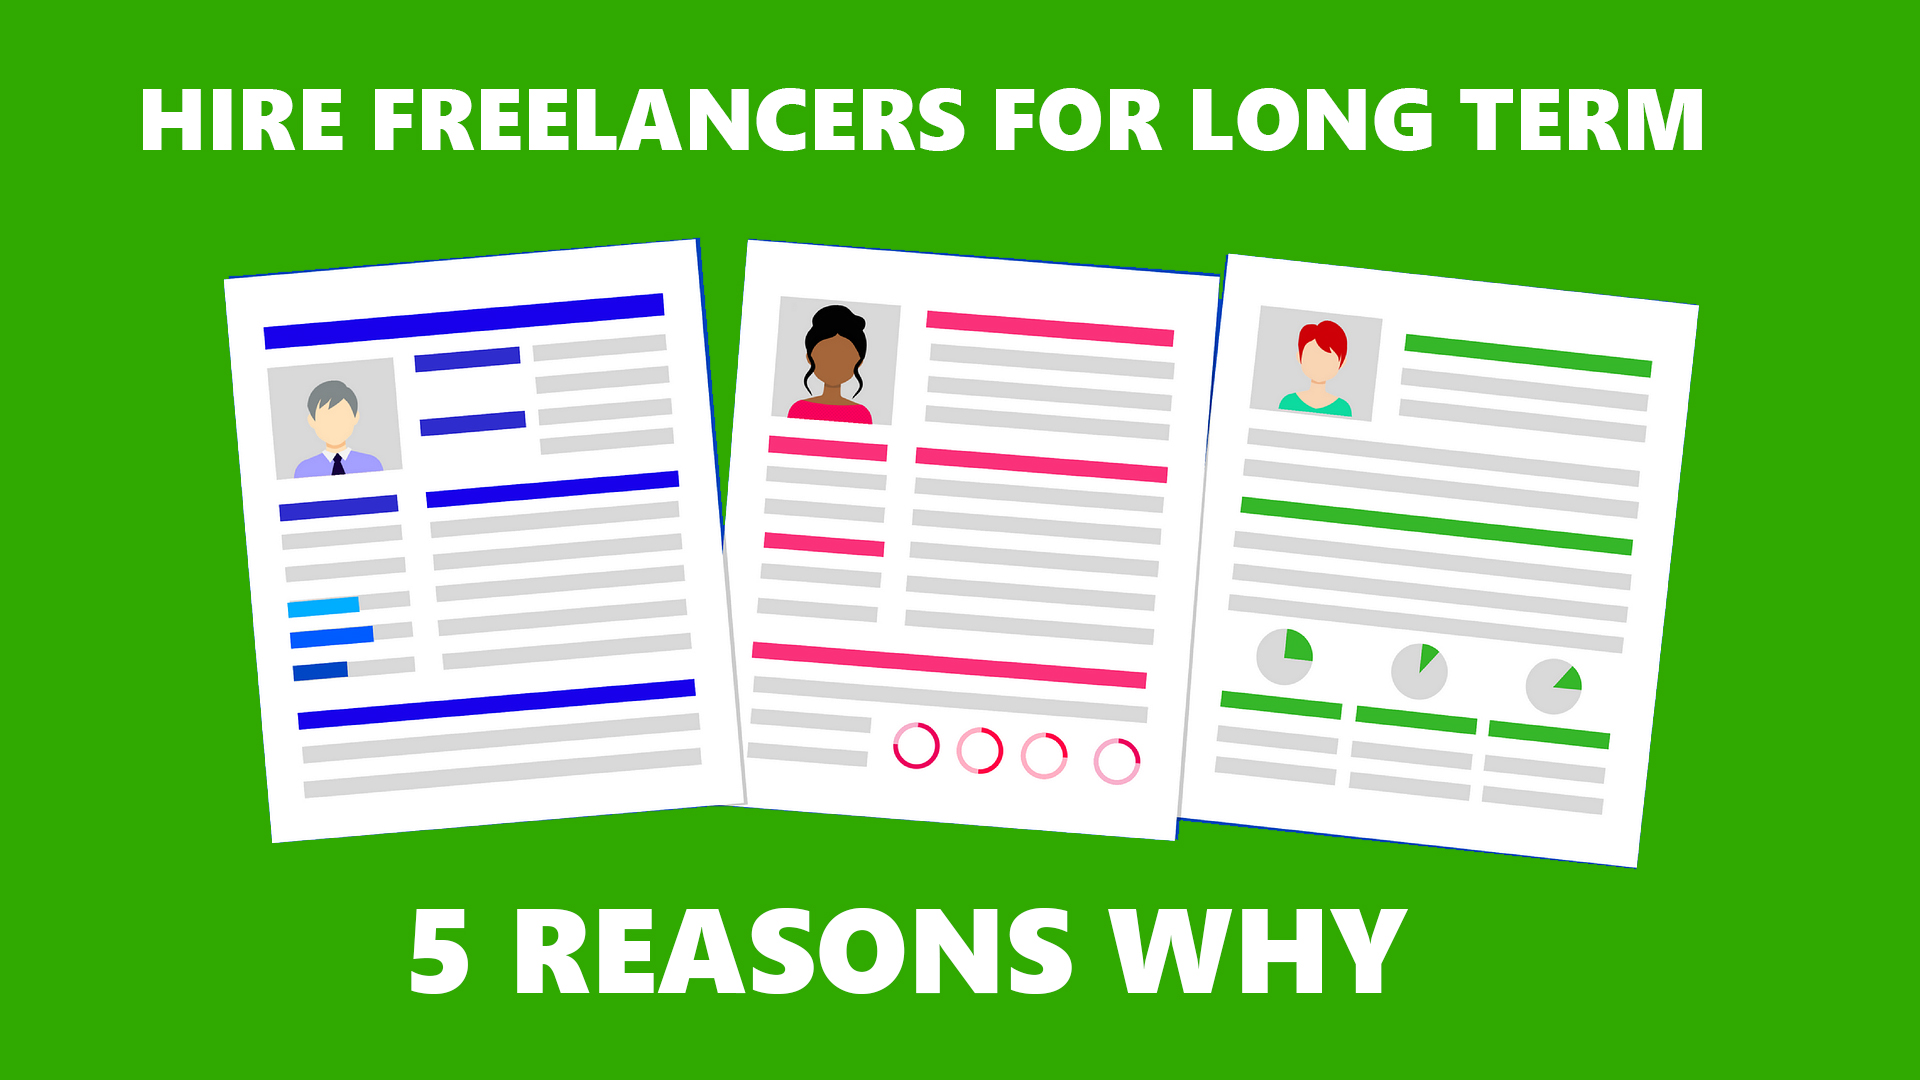 5 Reasons You Should Hire Freelancers For Long Term